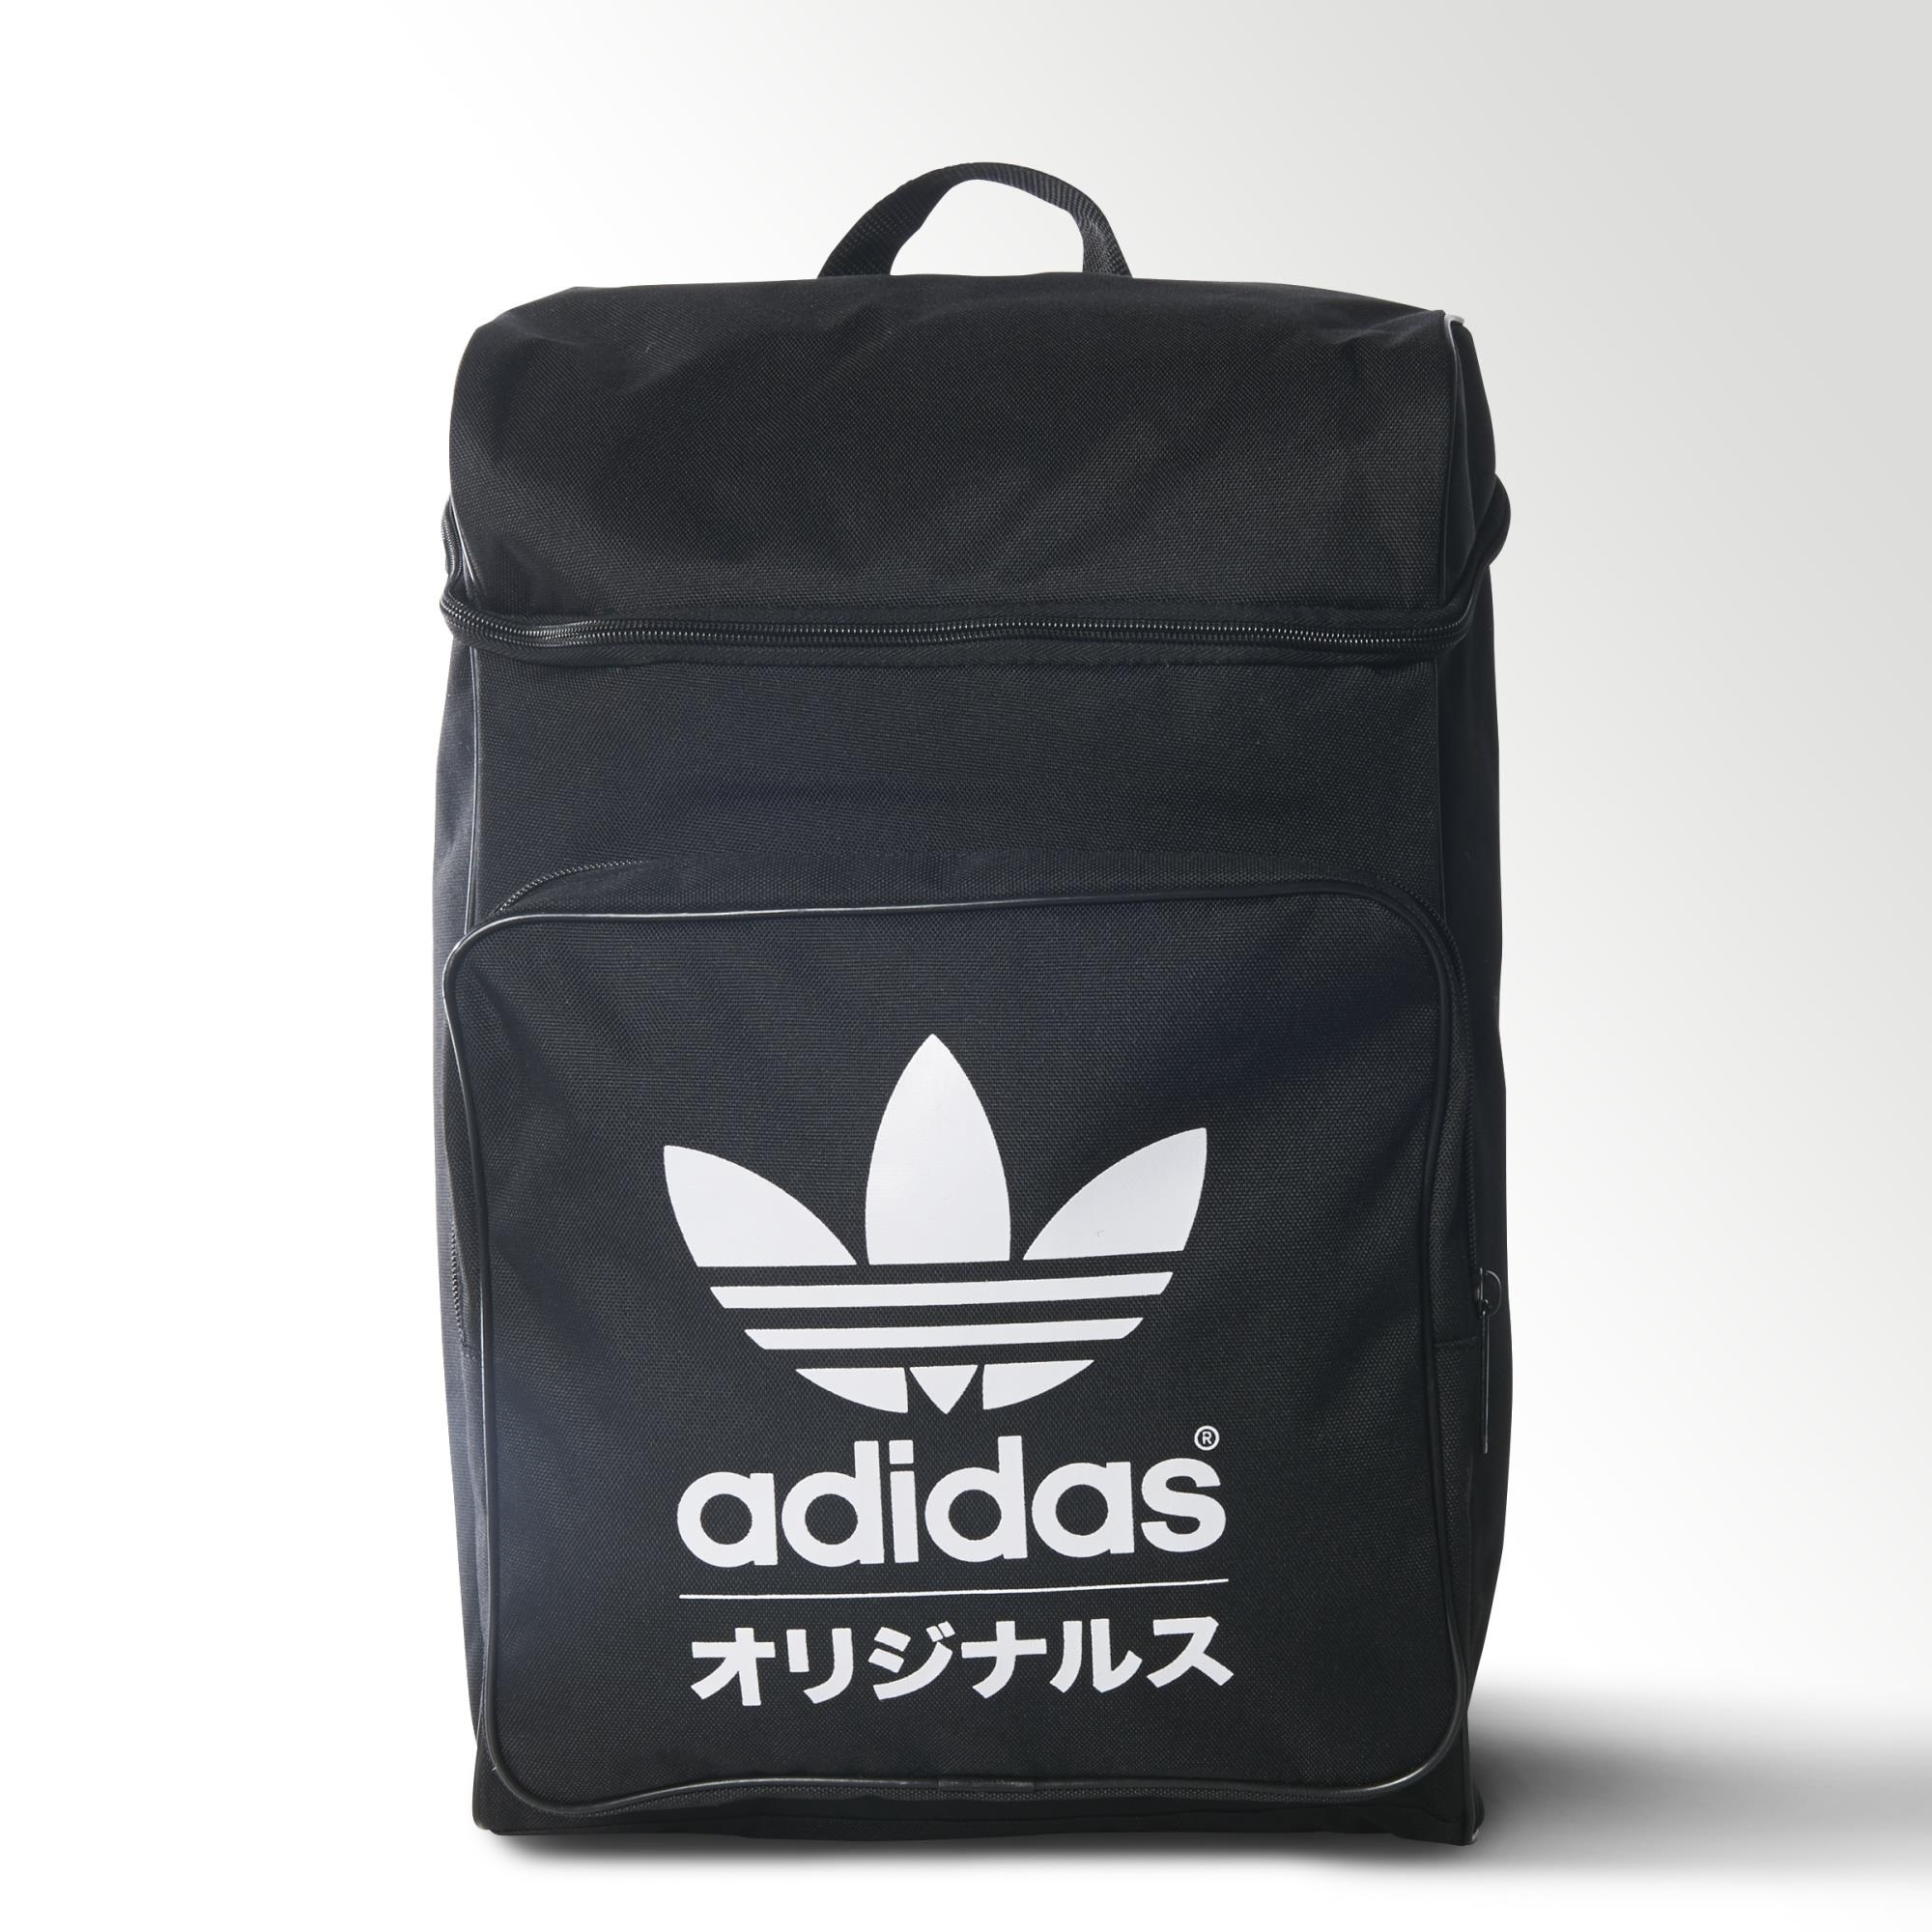 ff1f9bba3d89 adidas rose backpack Sale